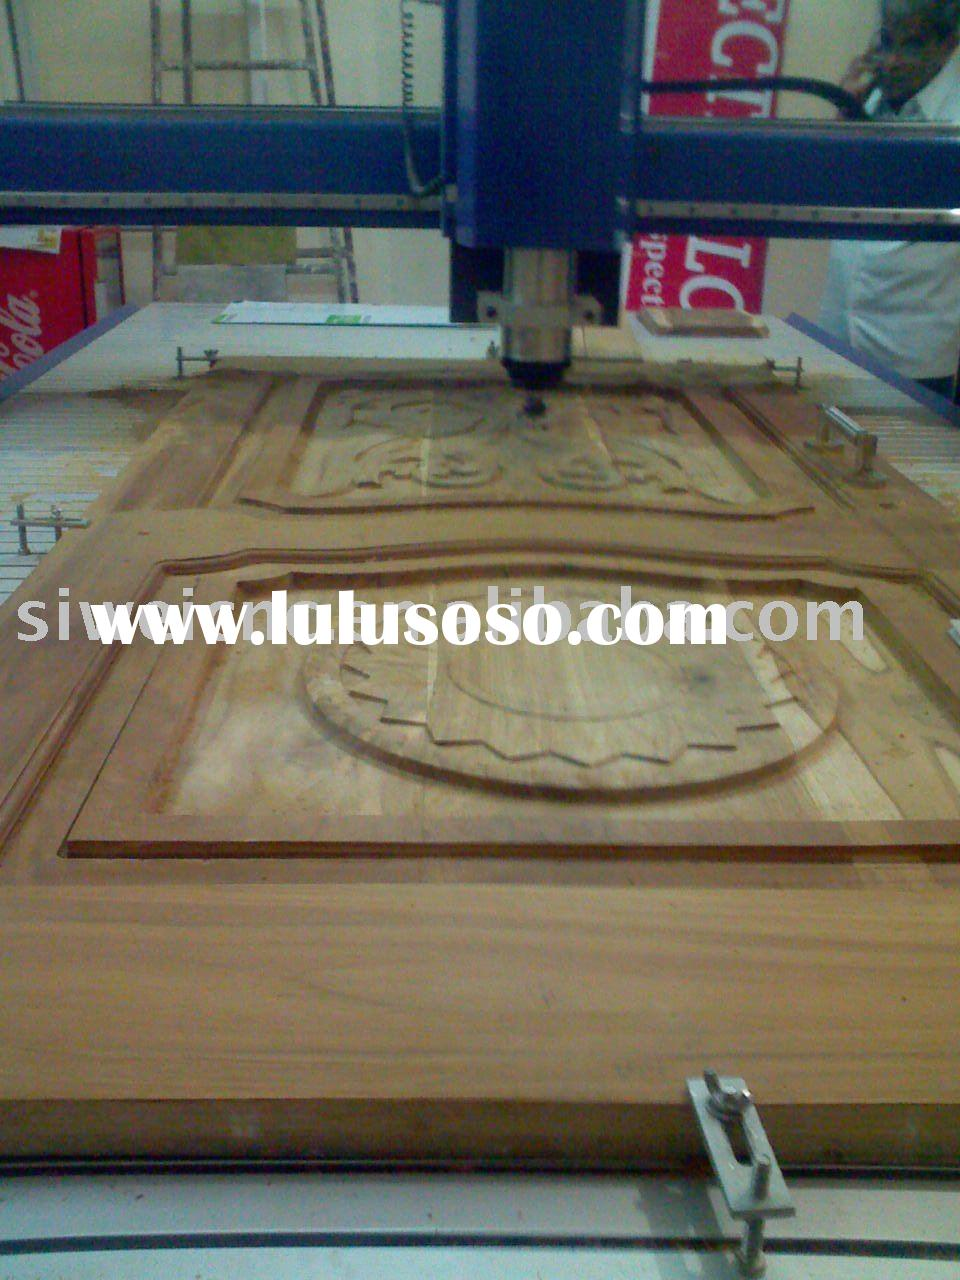 Cool  Wood Router Cnc  Buy Router CncCnc Router MachineWood Cnc Router